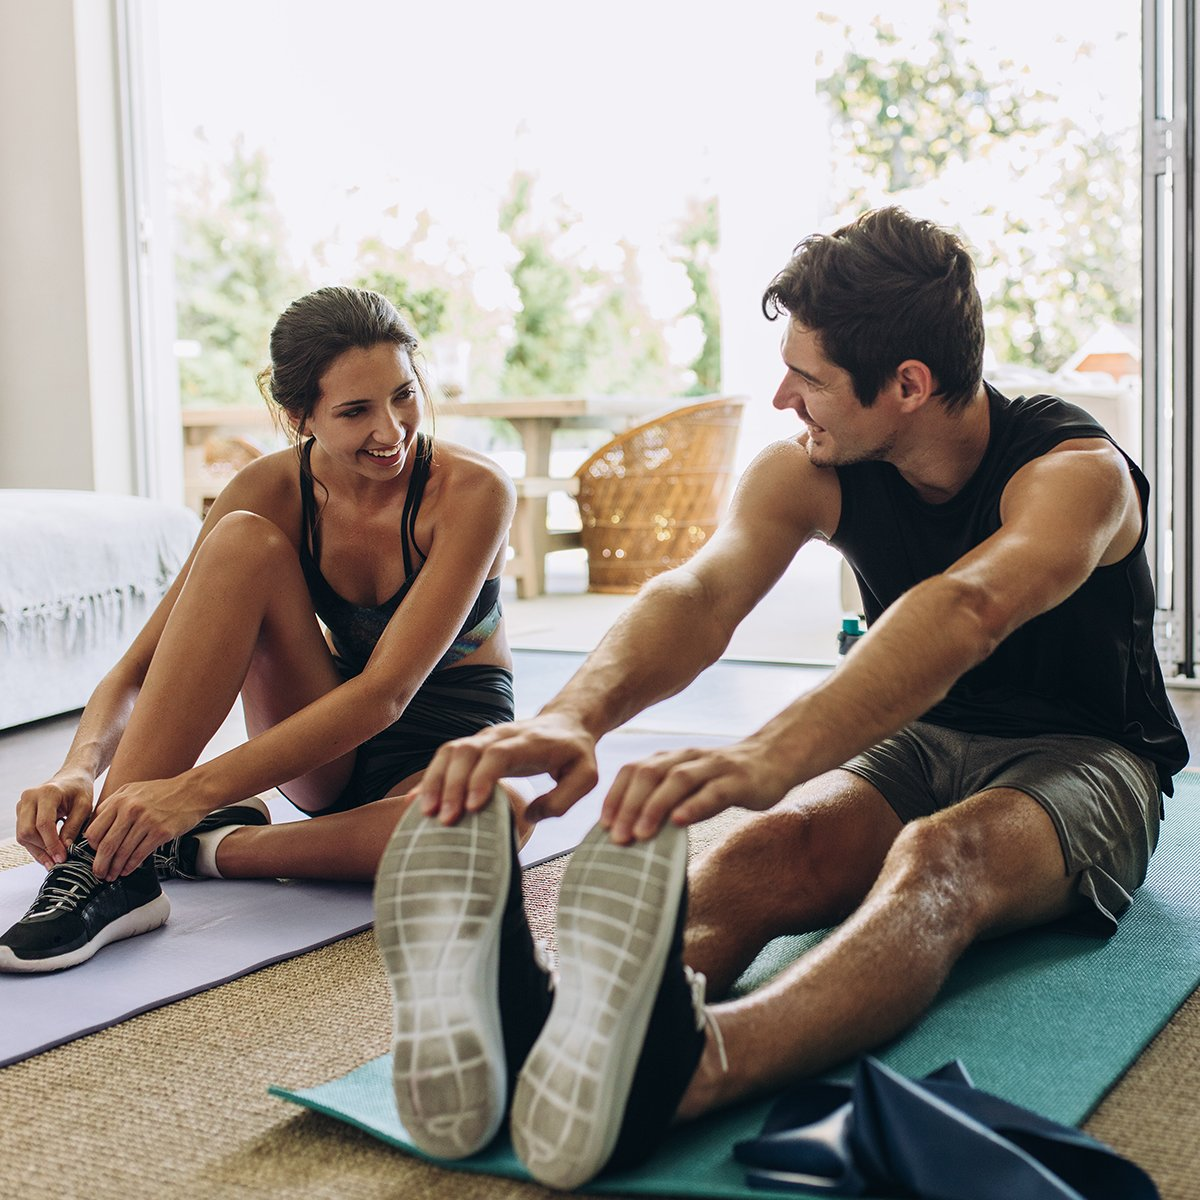 Home Workout Routines For Gains Without All The Equipment 1